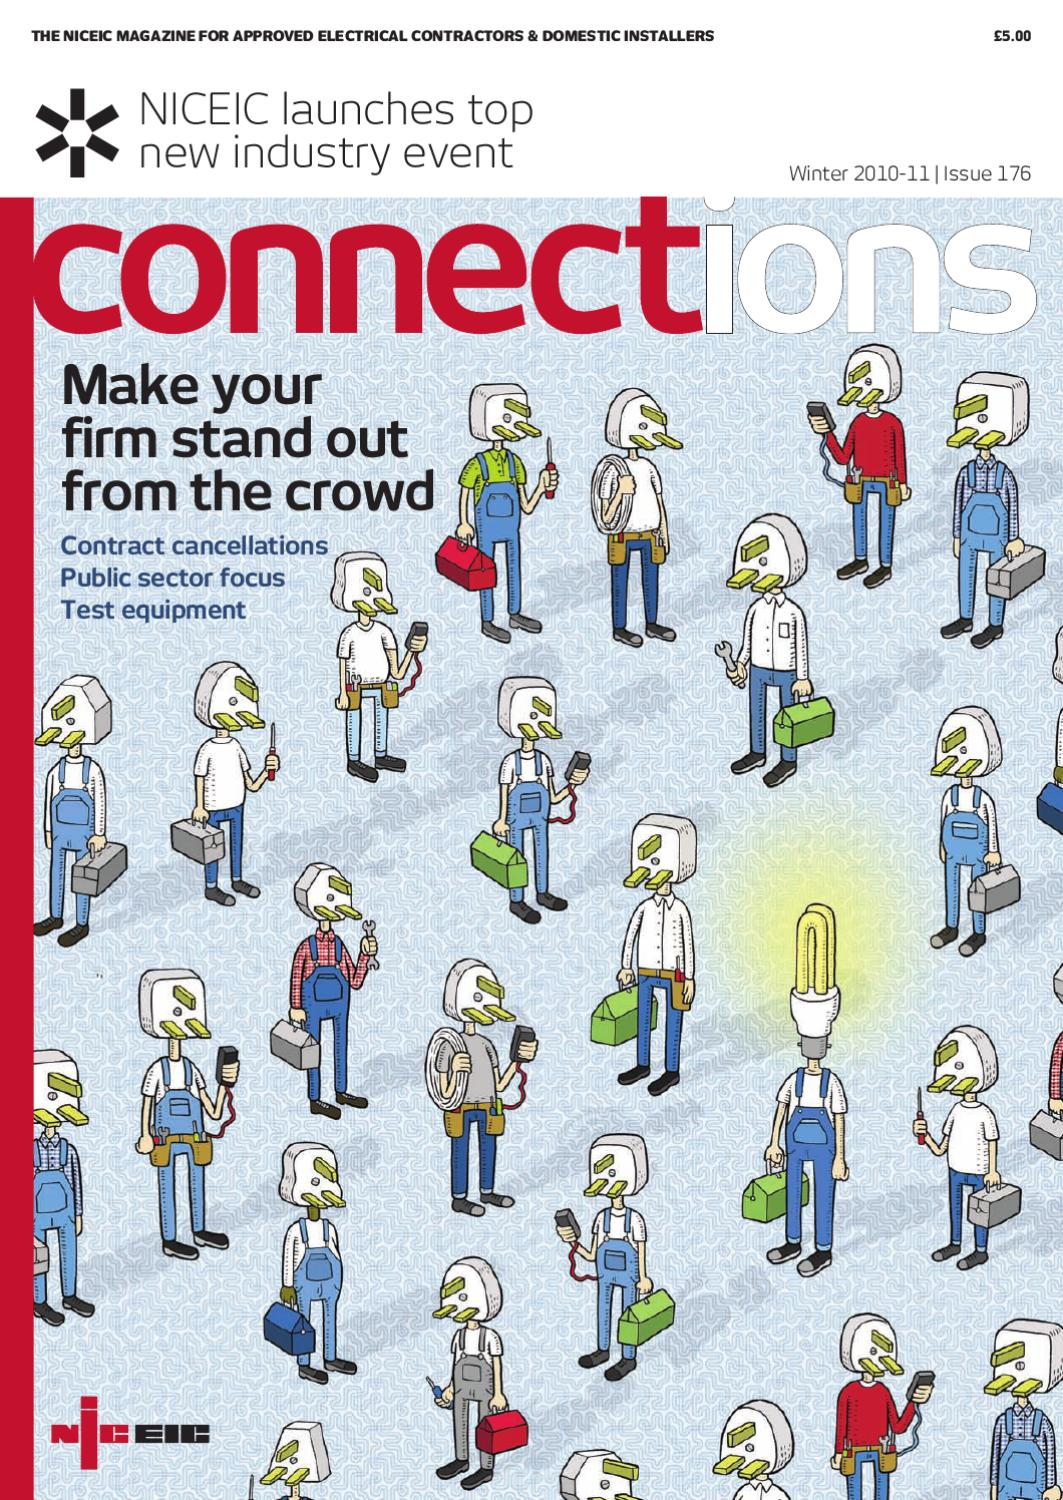 Connections January 2011 By Redactive Media Group Issuu Fantastic Item For Testing 6 12v Circuits